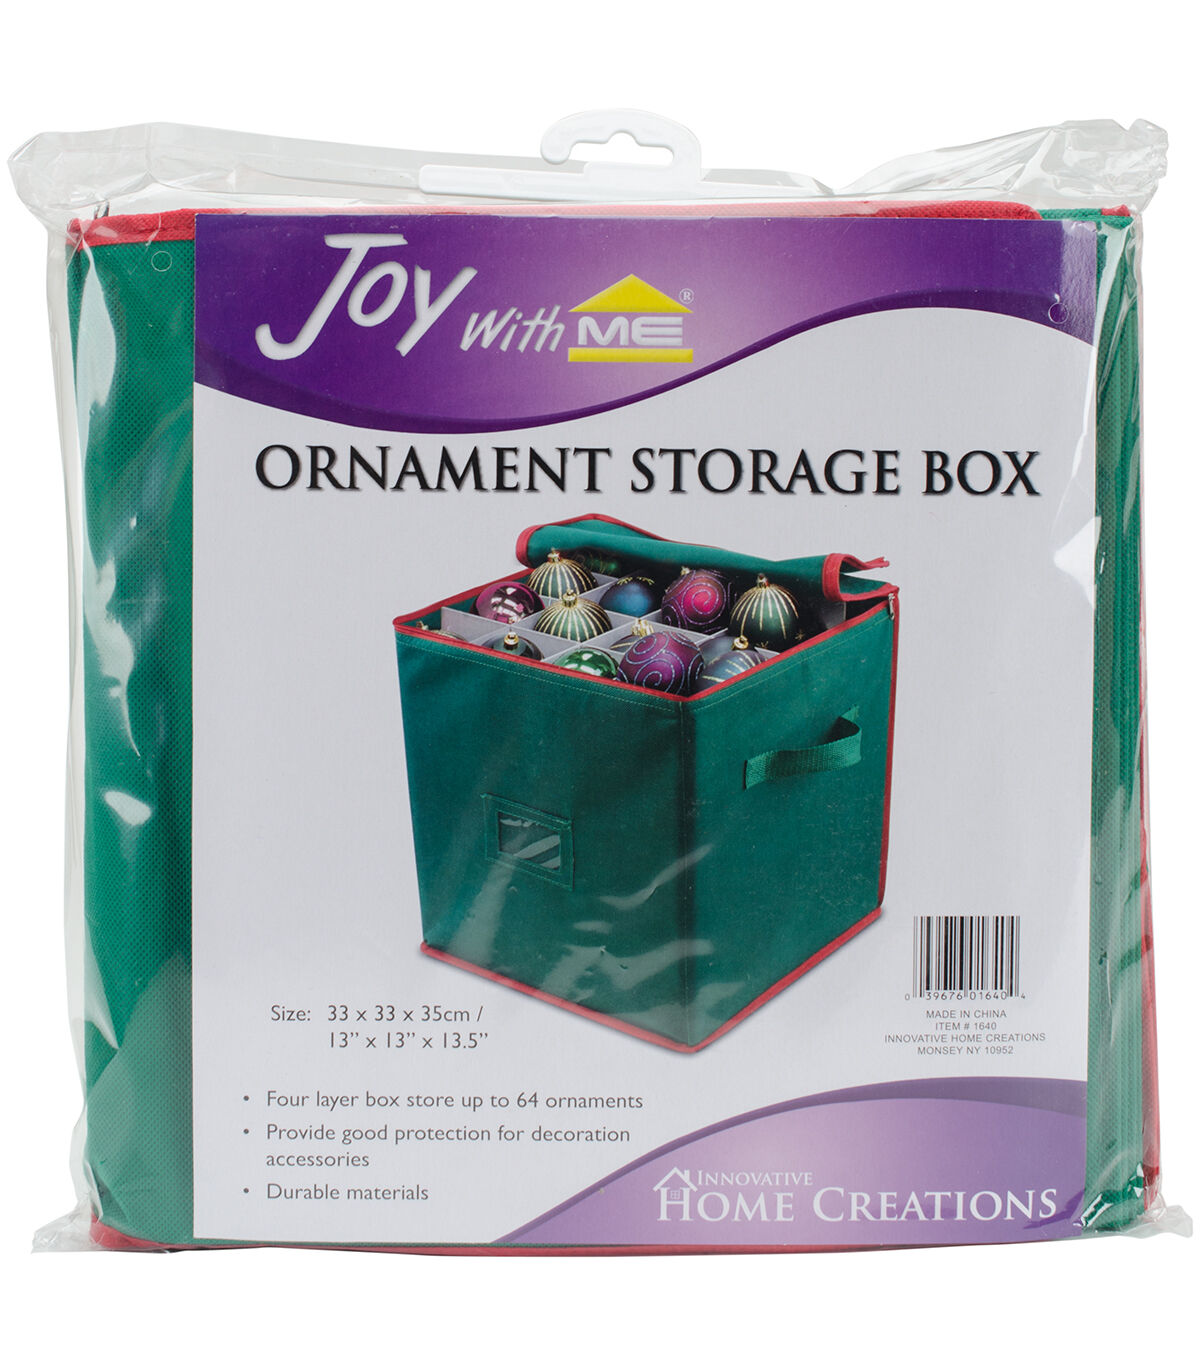 innovative home creations ornament storage box